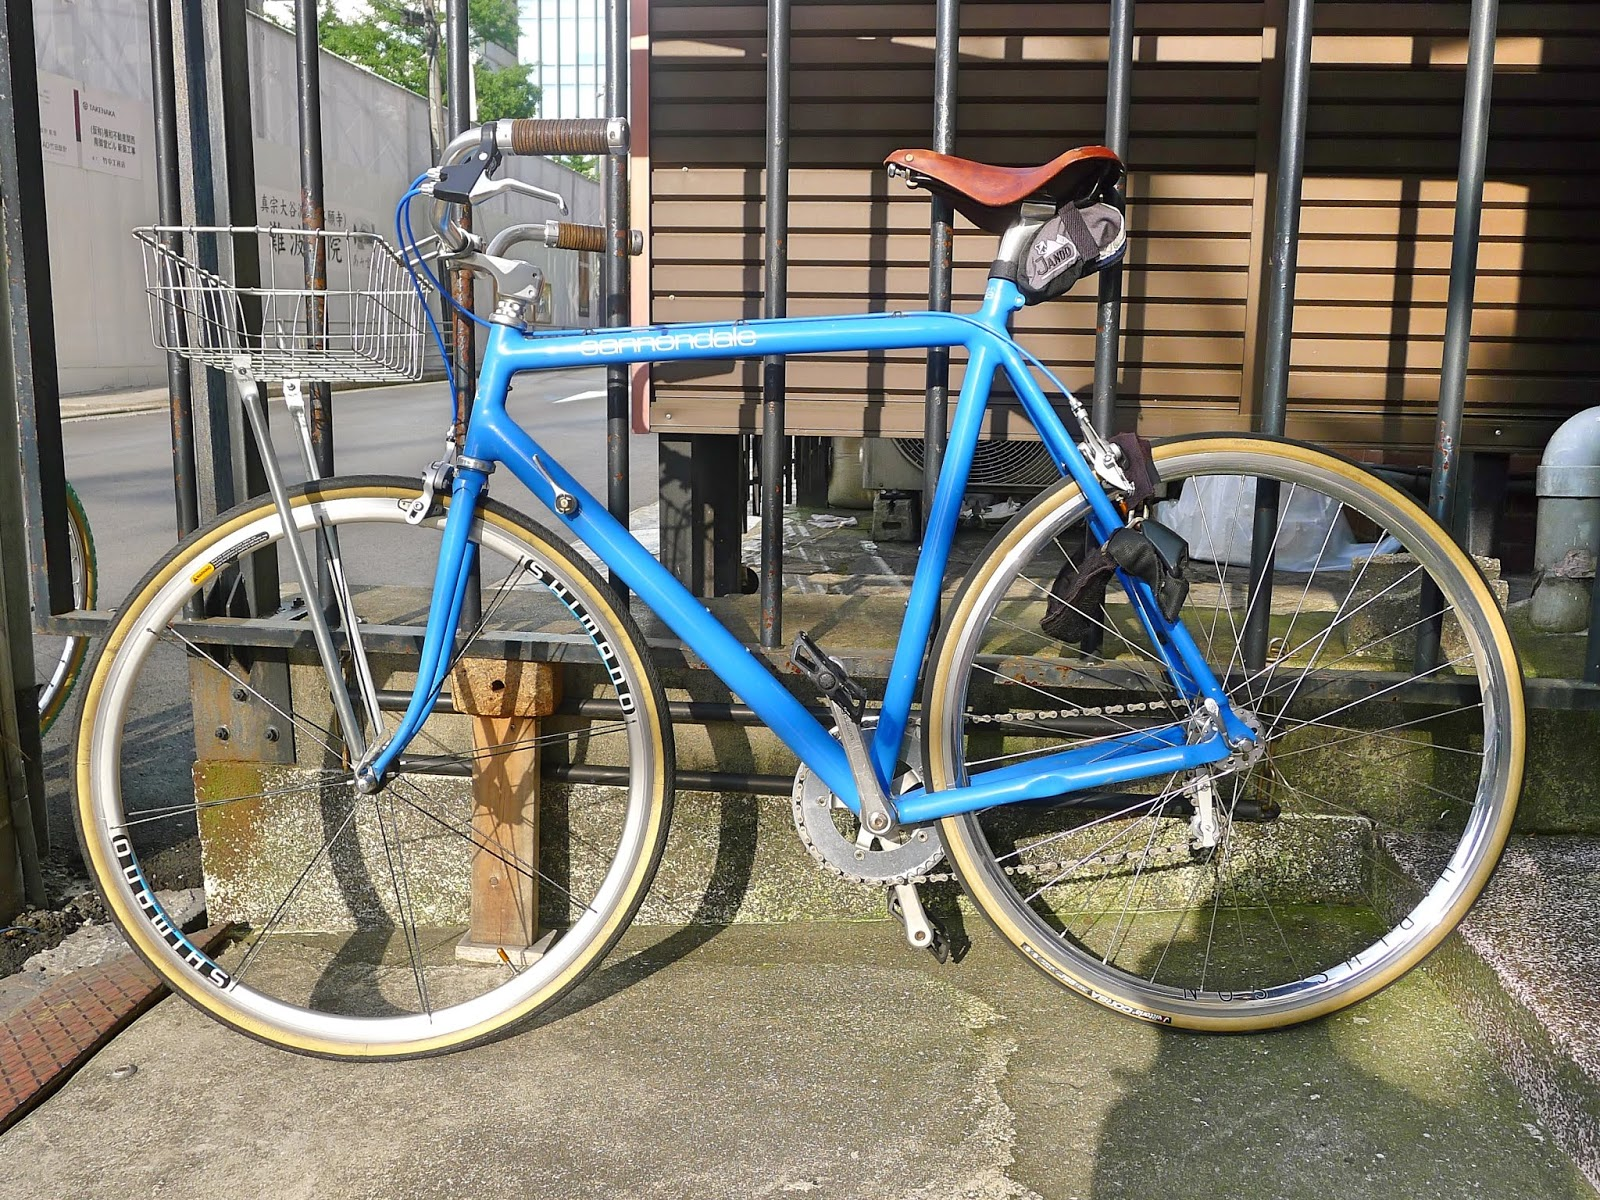 4103b1f4884 A very classy vintage Cannondale road bike bosco bar/ basket conversion  spotted parked outside Public